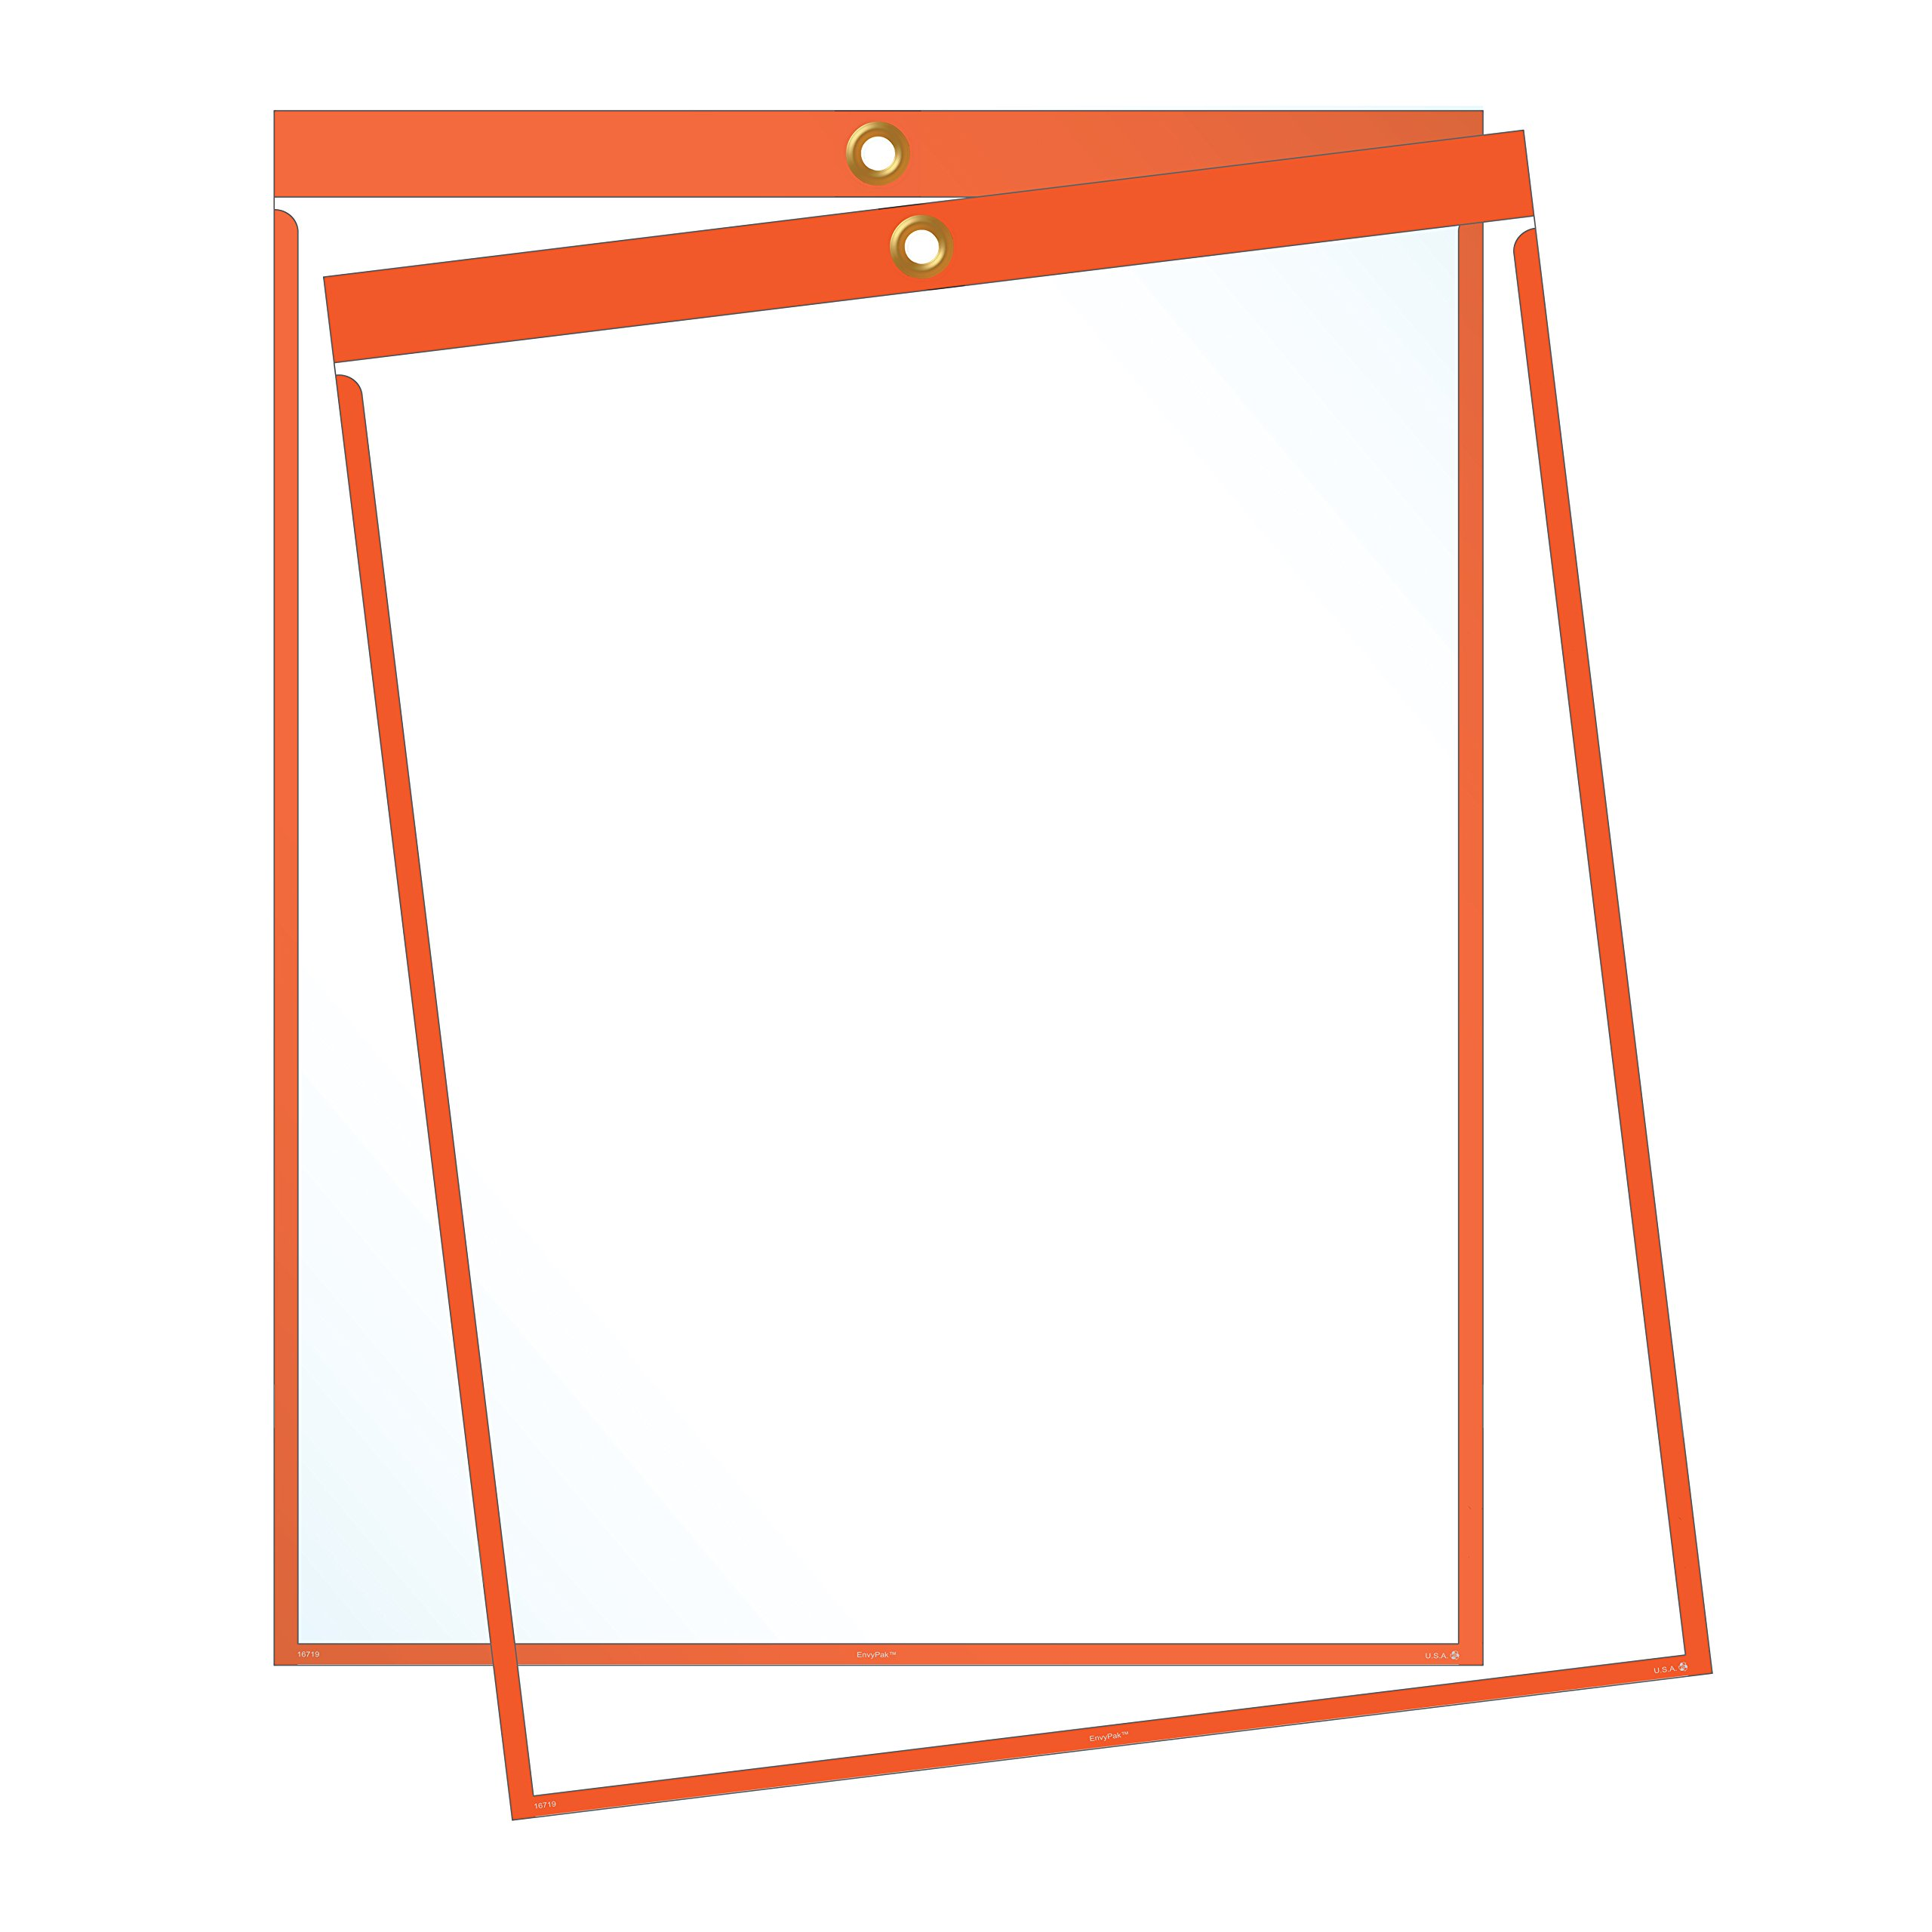 Job Ticket Holders - 9''x12'' - Pack of 30 (orange) Top-loading with eyelet for hanging